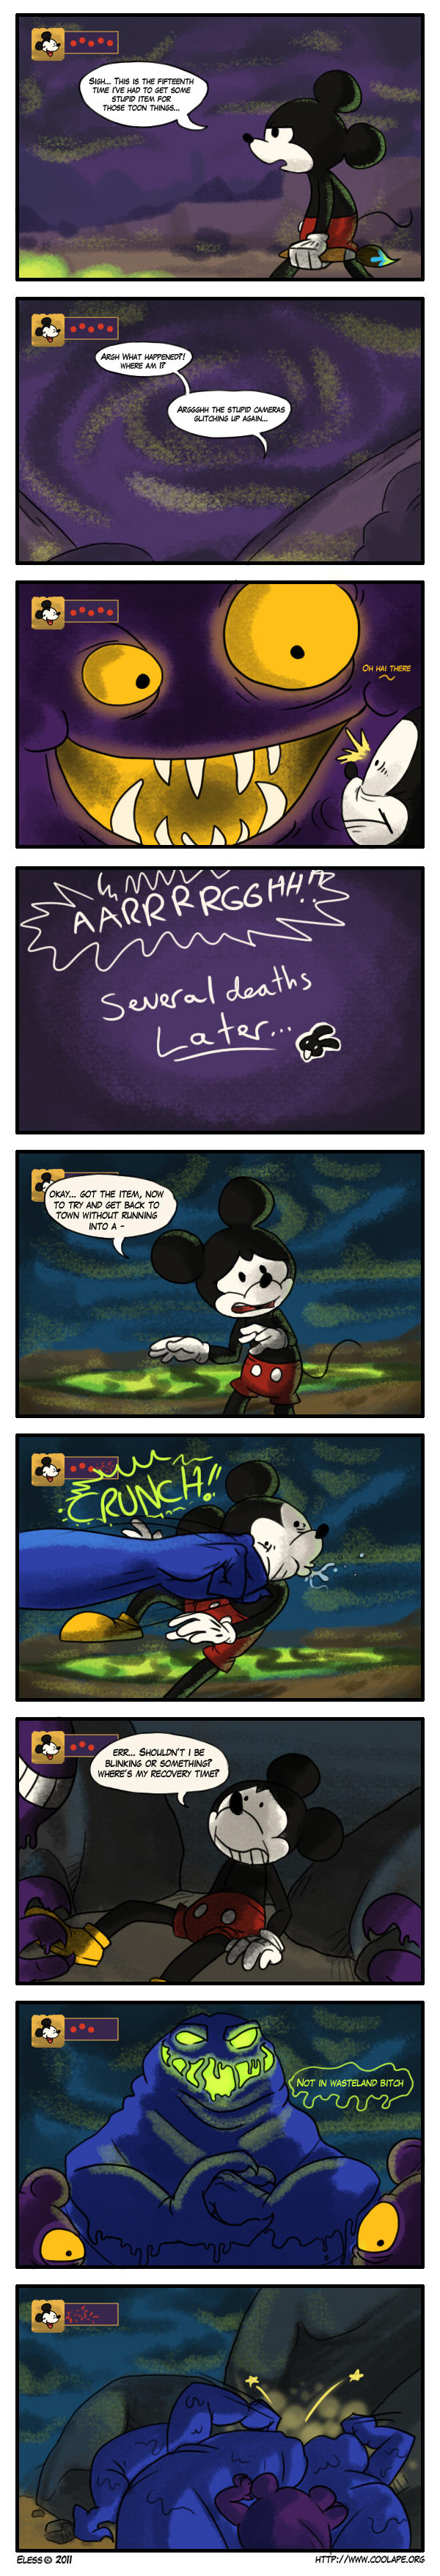 Comic - Epic mickey pt 1 by mmishee